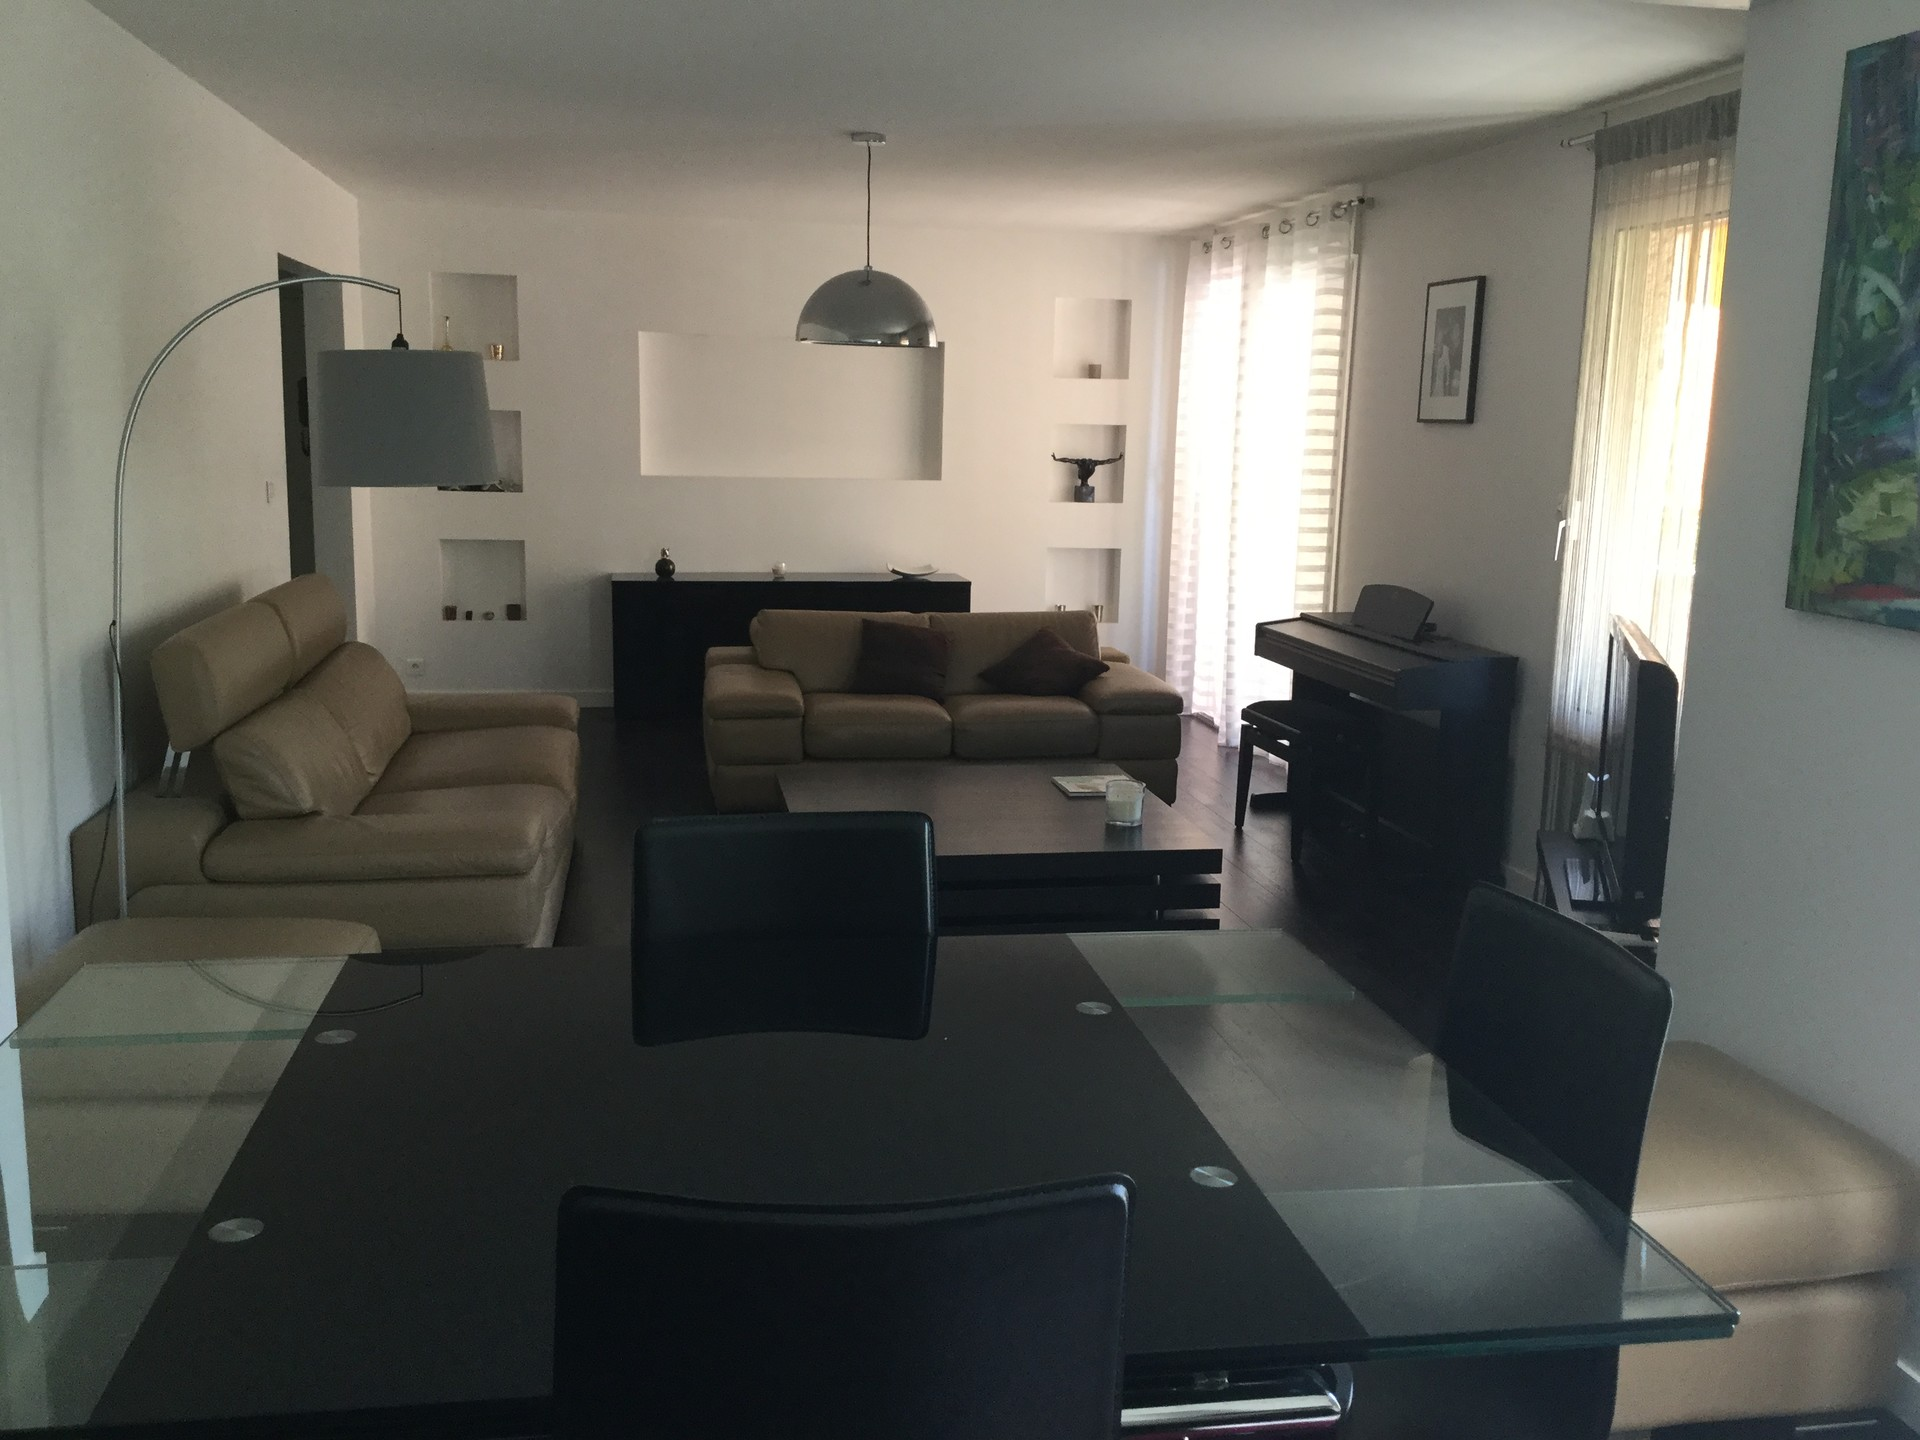 Chambre Etudiant Toulouse Colocation Appartement Moderne Location Chambres Toulouse